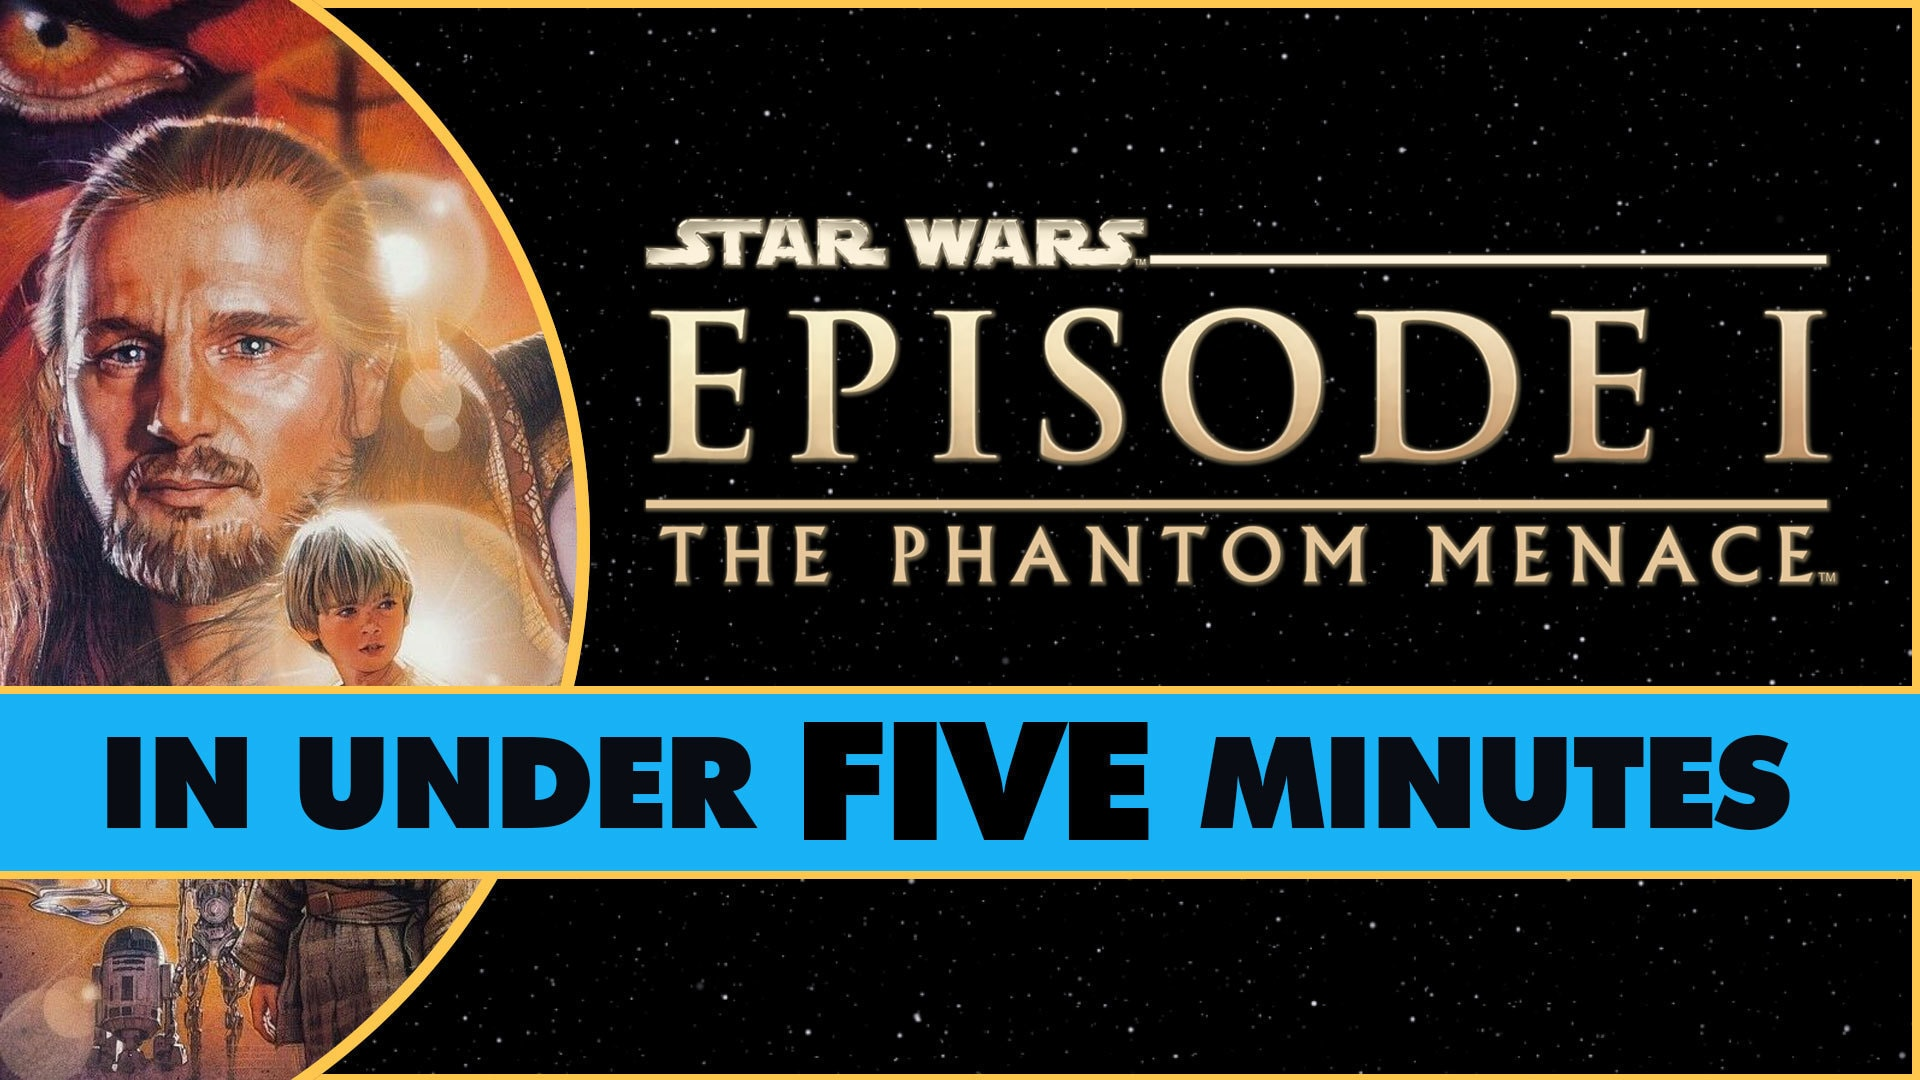 Star Wars: The Phantom Menace in Under Five Minutes